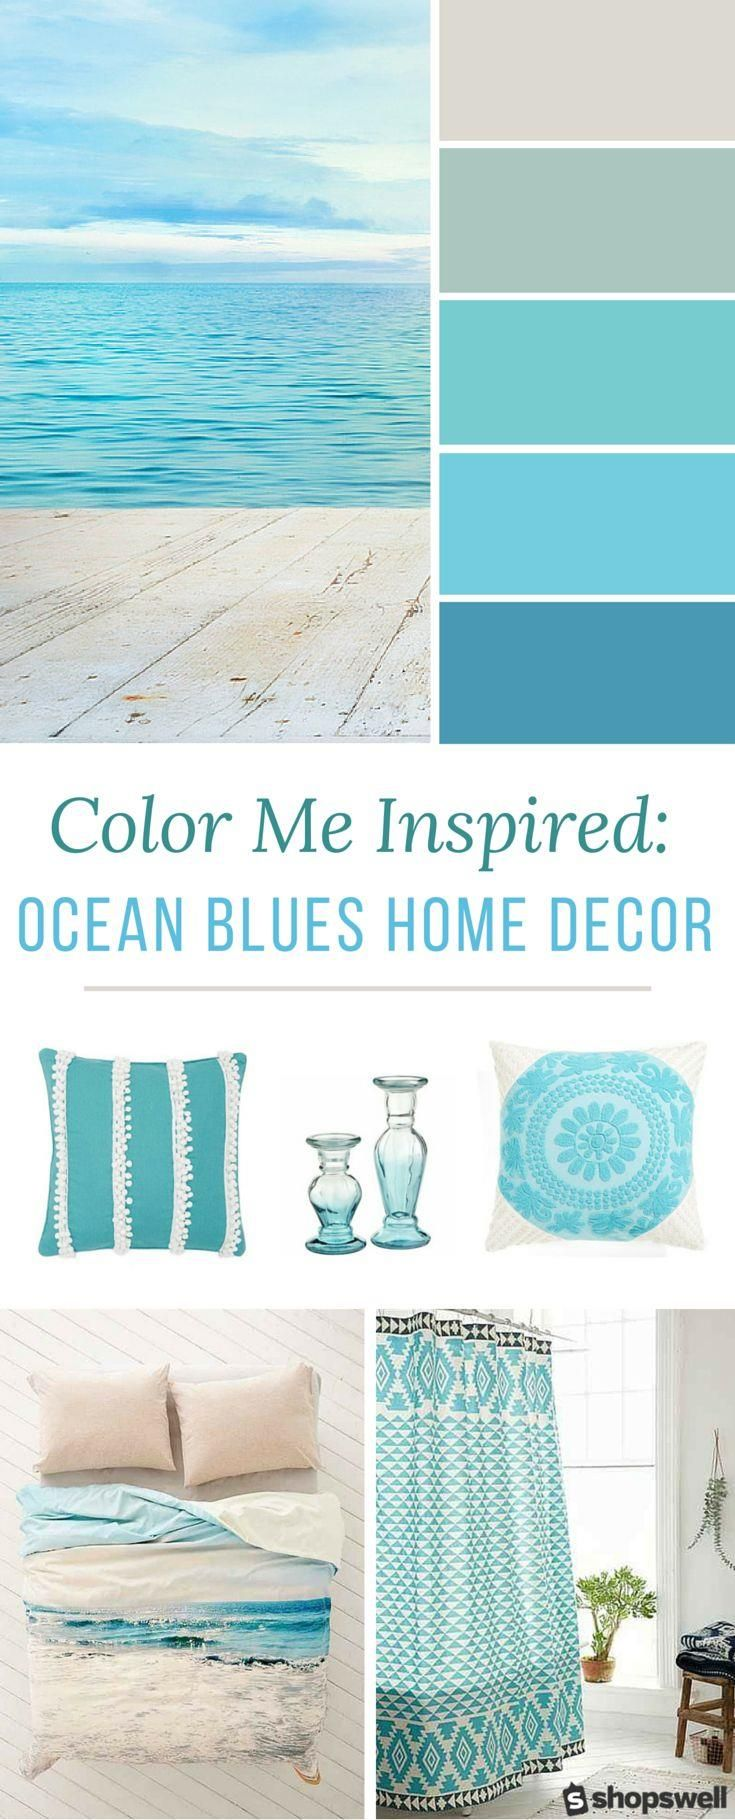 Pretty Colors For Bathroom :) Blue Ocean Tones Are The Inspiration Behind  This Summer Home Decor Collection. Decorate Your Beach House Or Simply Give  Your ...